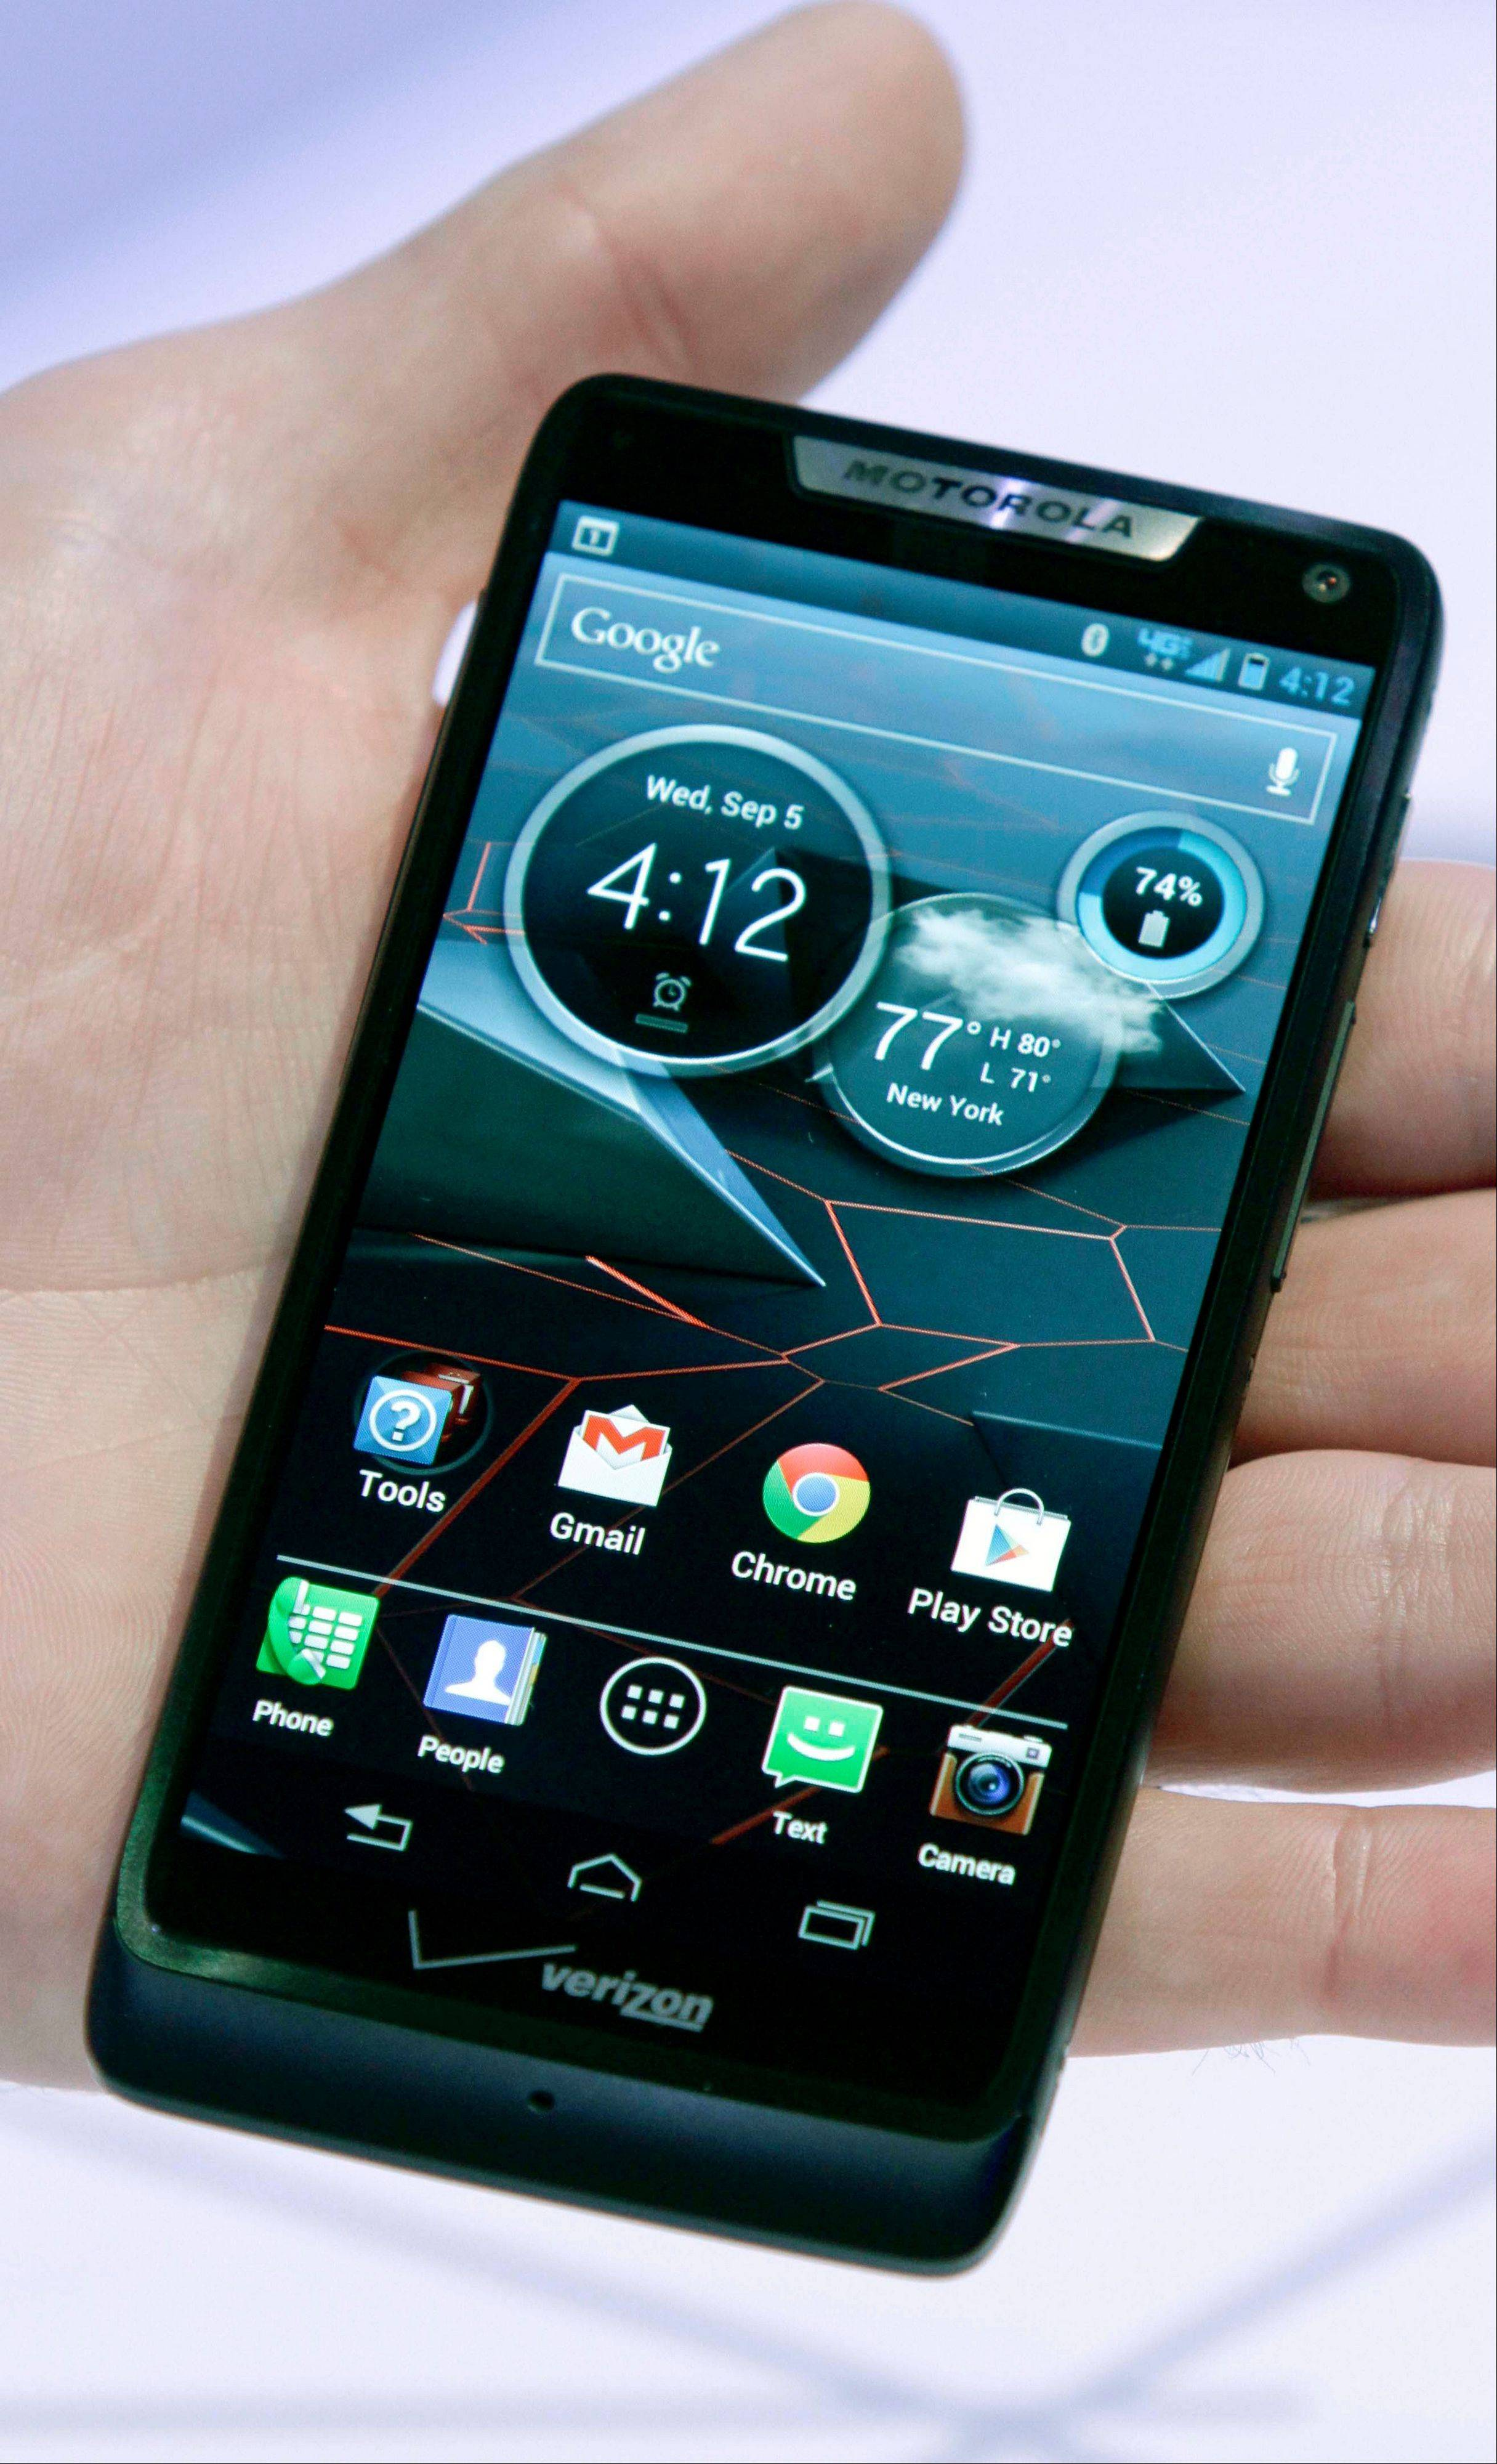 The new Droid Razr M is one of three new smartphones unveiled by Motorola since it became a part of Google.